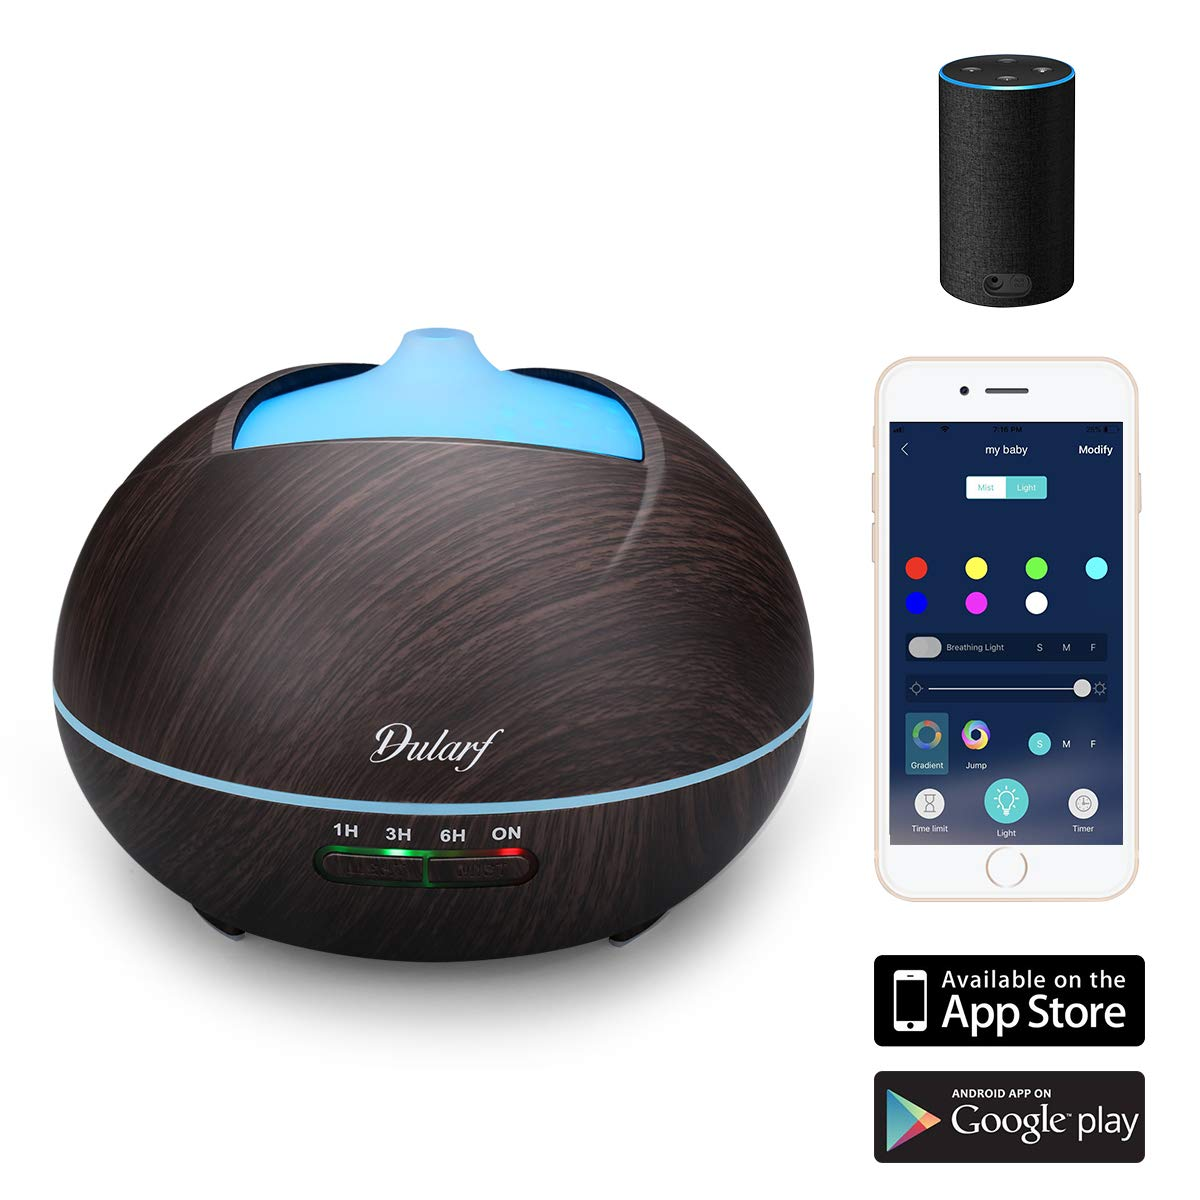 Essential Oil Diffuser with app control, voice & color! 60% off – $14.67 on Amazon